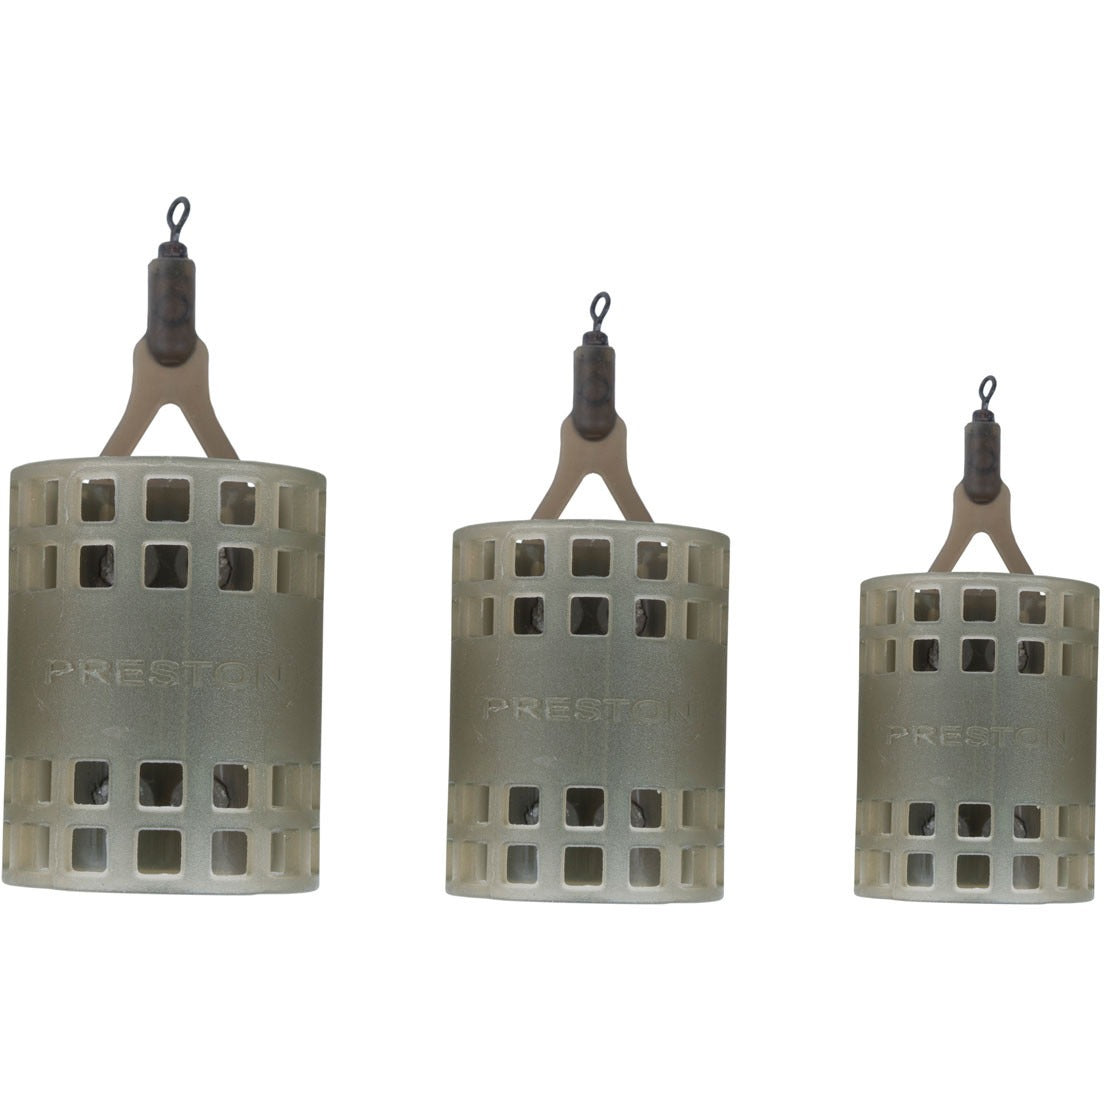 Preston Innovations Plug it Feeders